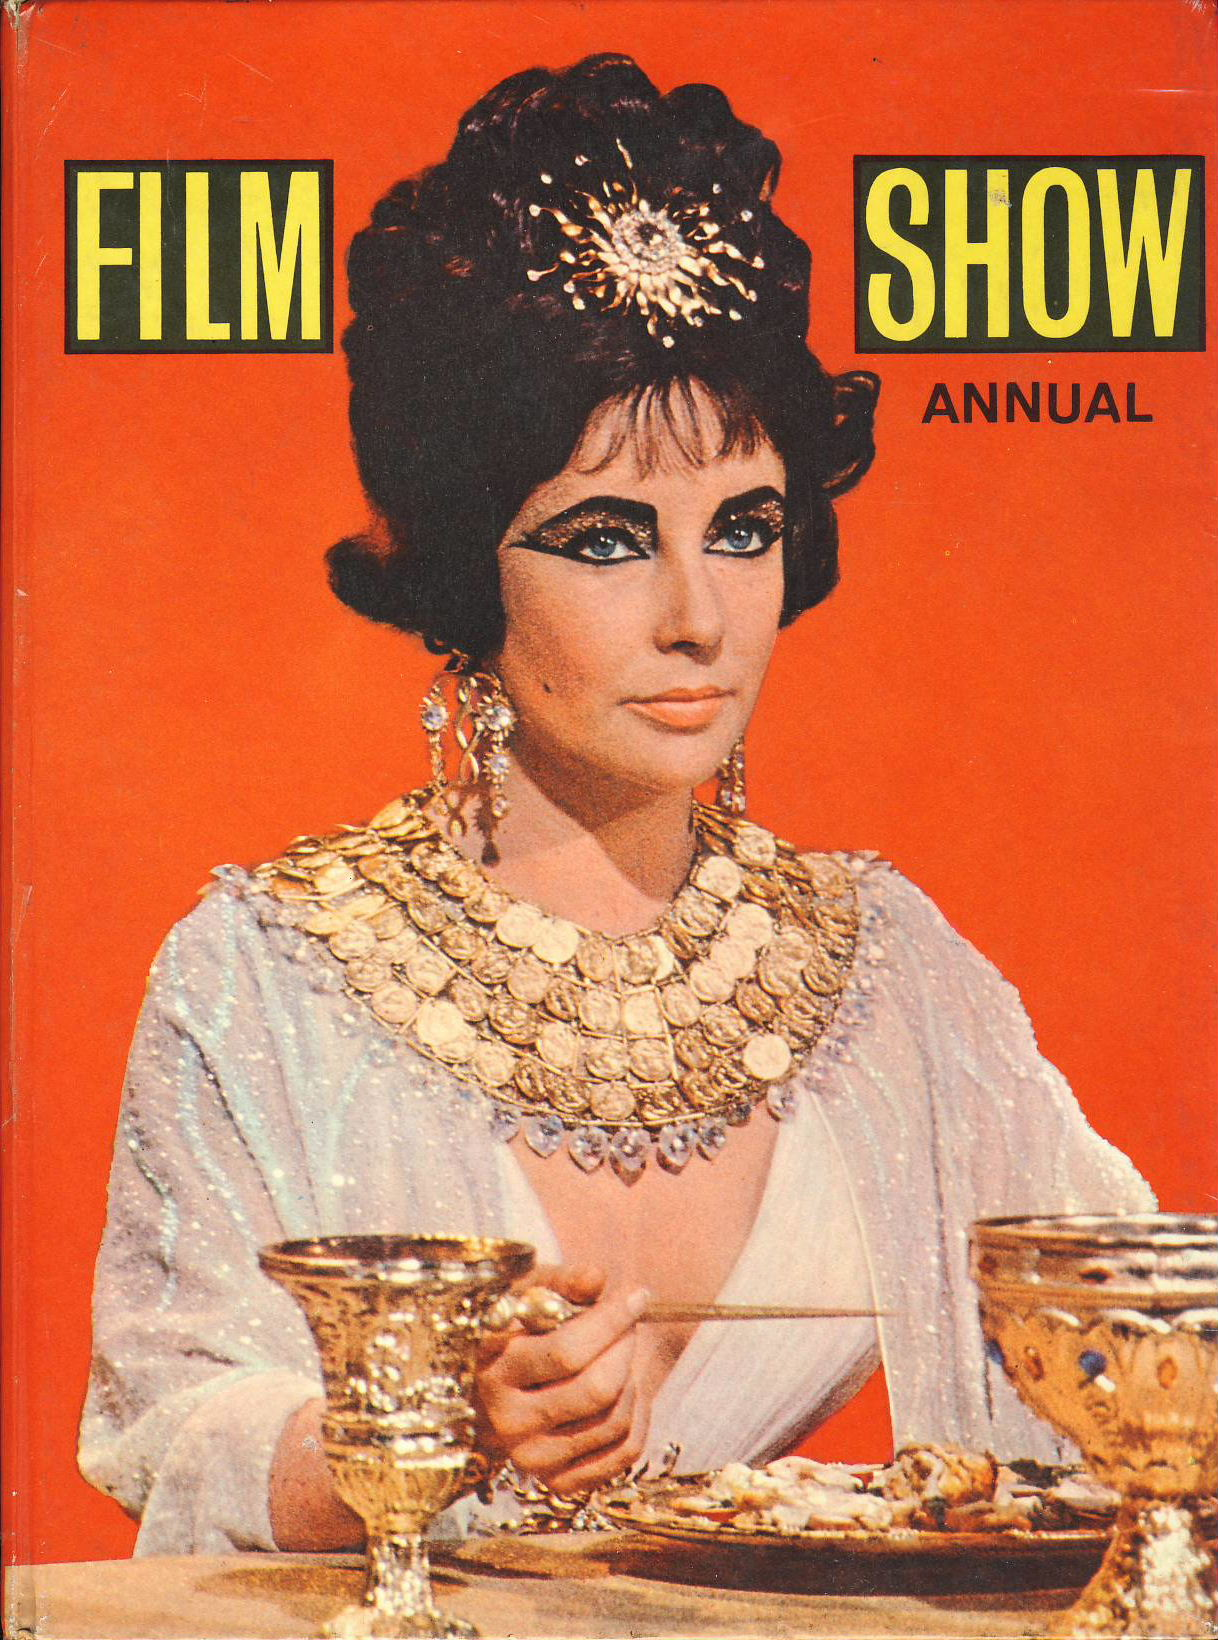 FILM SHOW ANNUAL Elizabeth Taylor on cover 1962 PURNELL HB book ref366 100 pages of photos and articles of the film stars dated 1962 Purnell & Sons Ltd. Edited by Ken Simmons. Pre-owned book in  good condition for age. Please see large photo for more details.